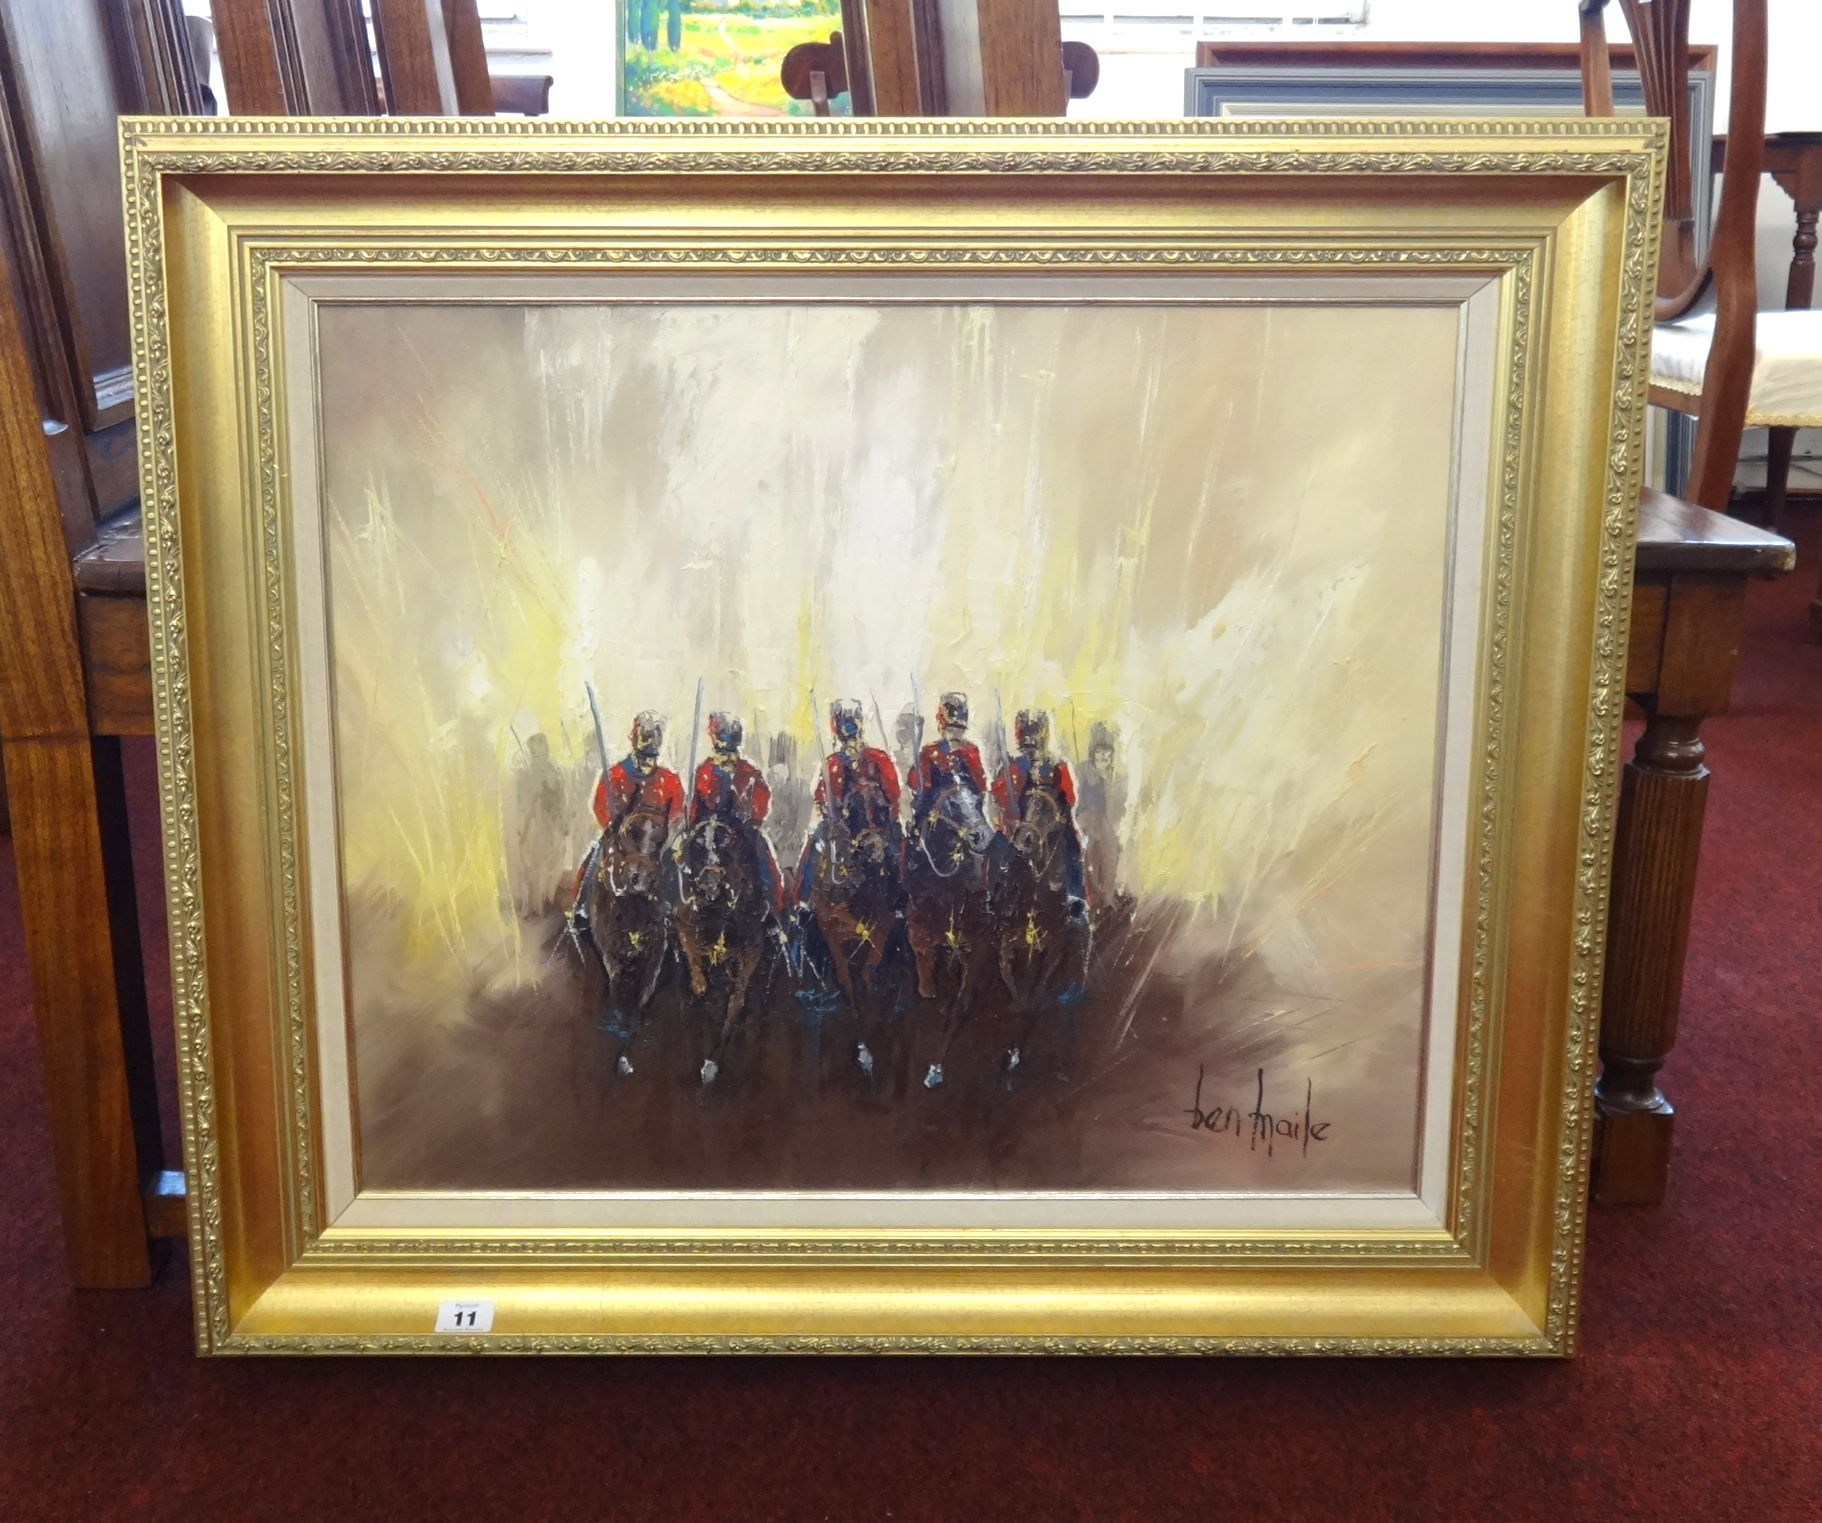 Lot 011 - Ben Maile (1922-2007) oil on canvas, 'Sabres in the Sun', signed, 50cm x 62cm.